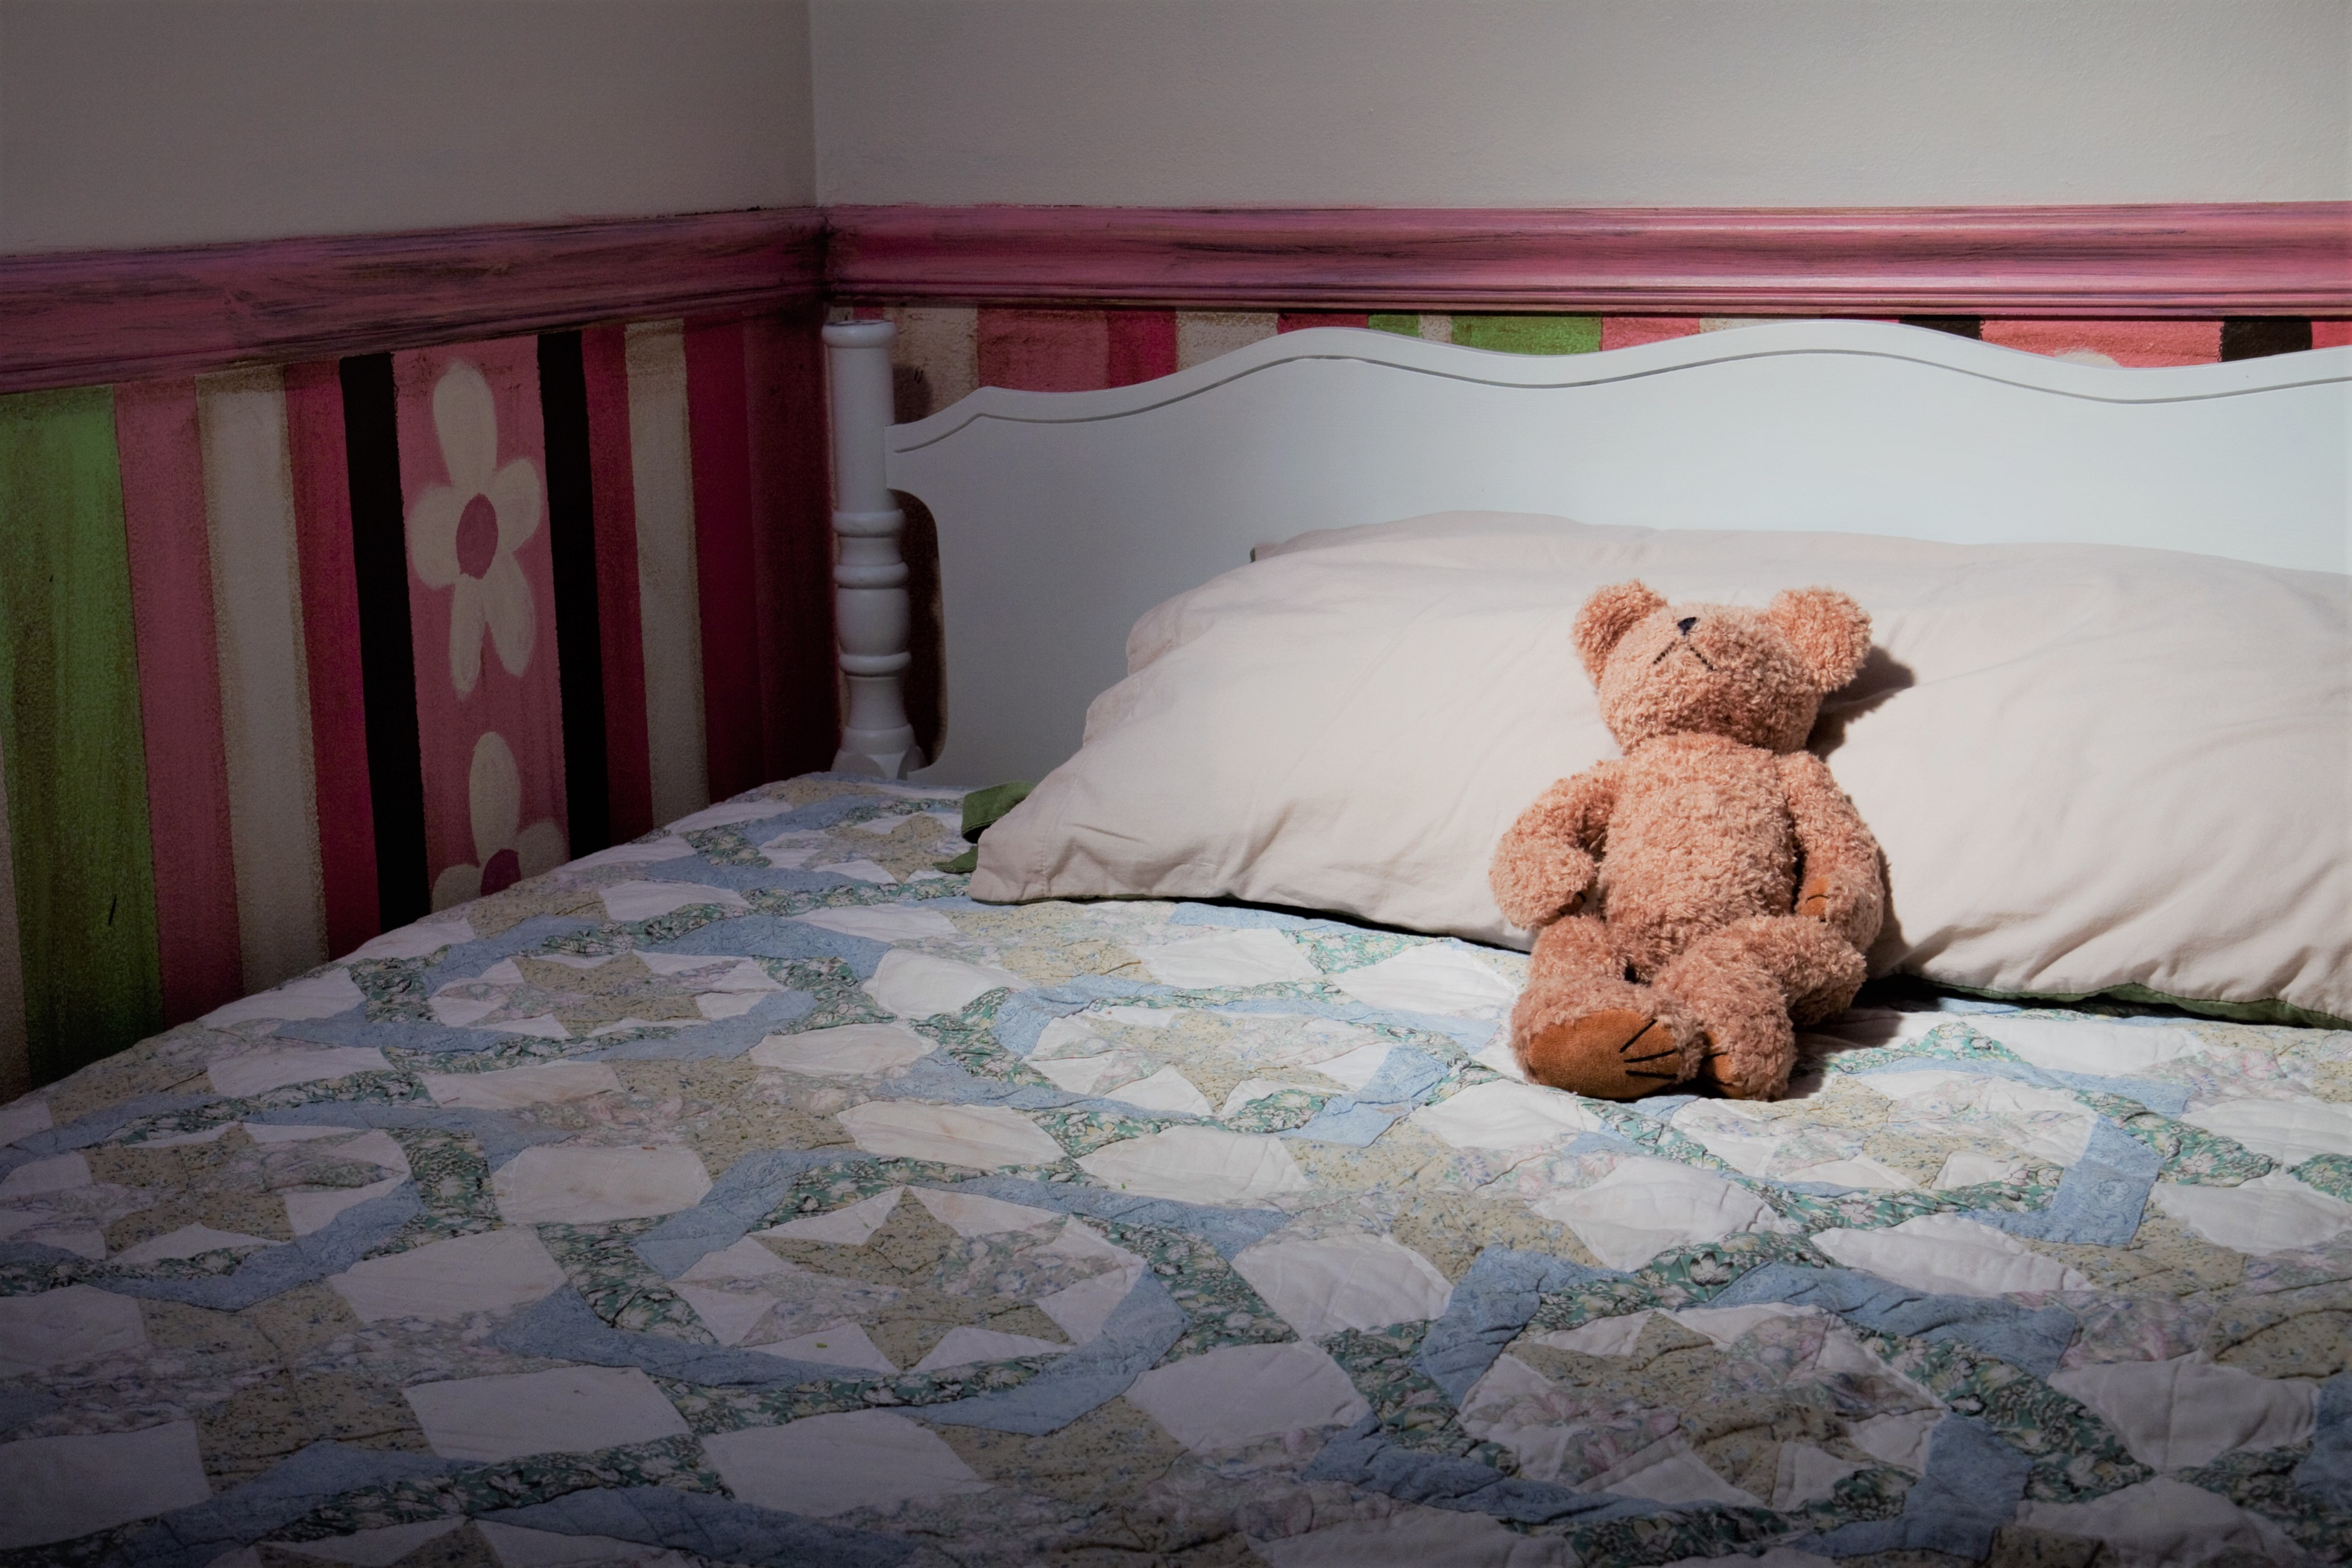 Teddy Bear on Bed Made in Child's Room